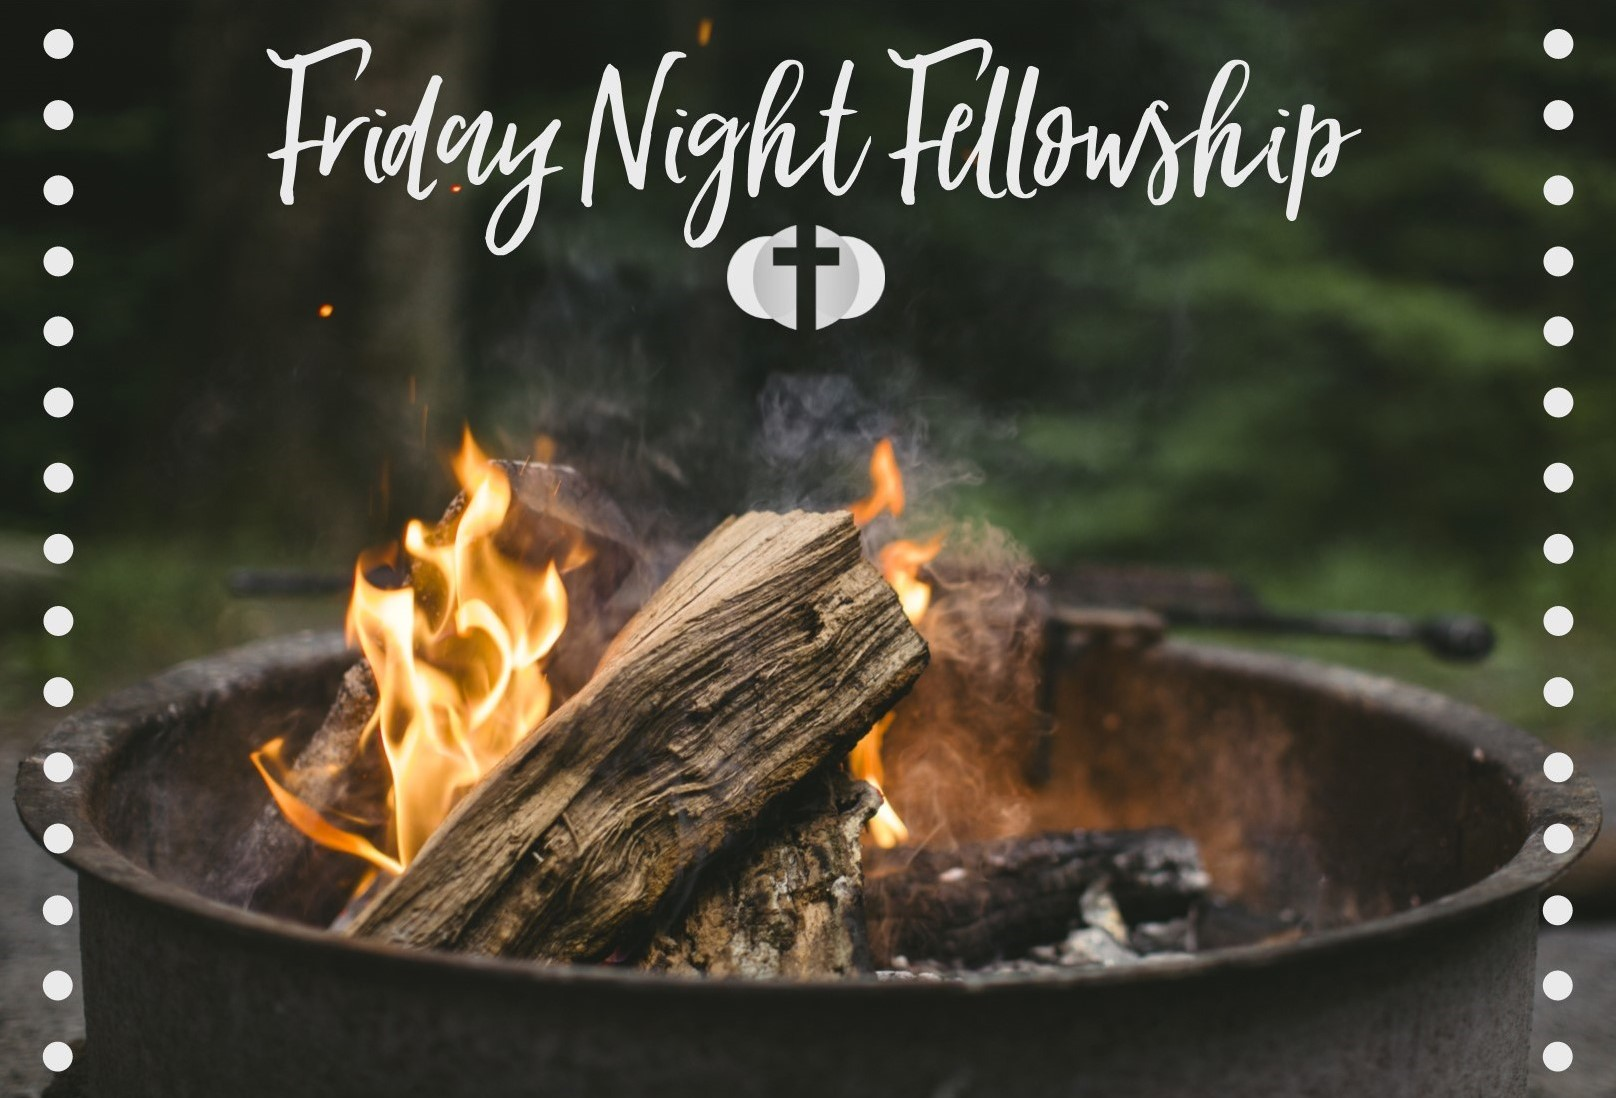 Friday Night Fellowship image